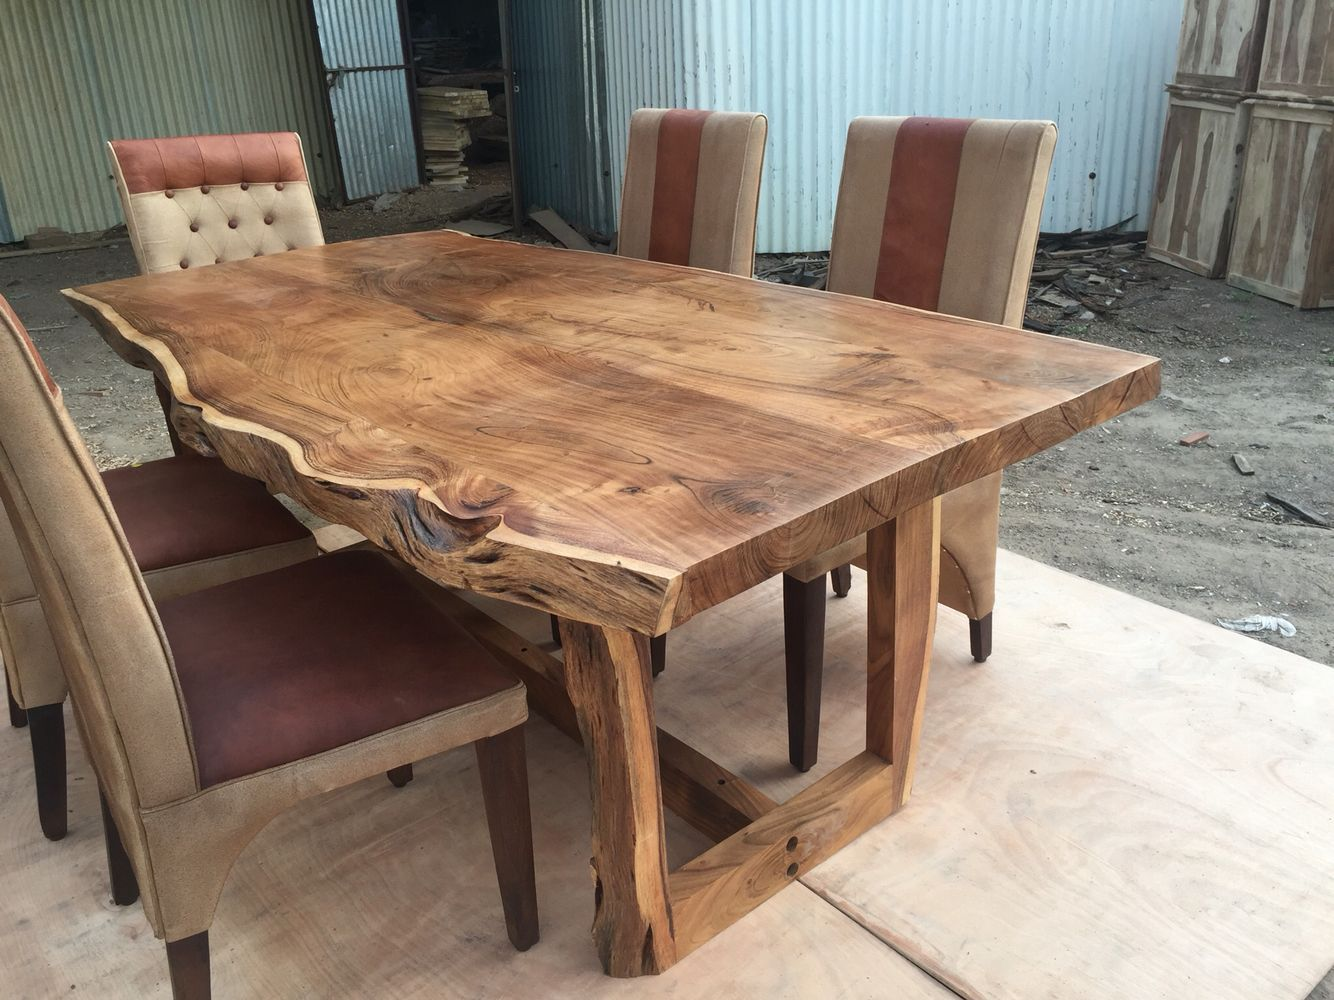 Live Edge Dining Table Inspiration For Your Room WoodCrafts TableDiningRooms Articulos Decorativos